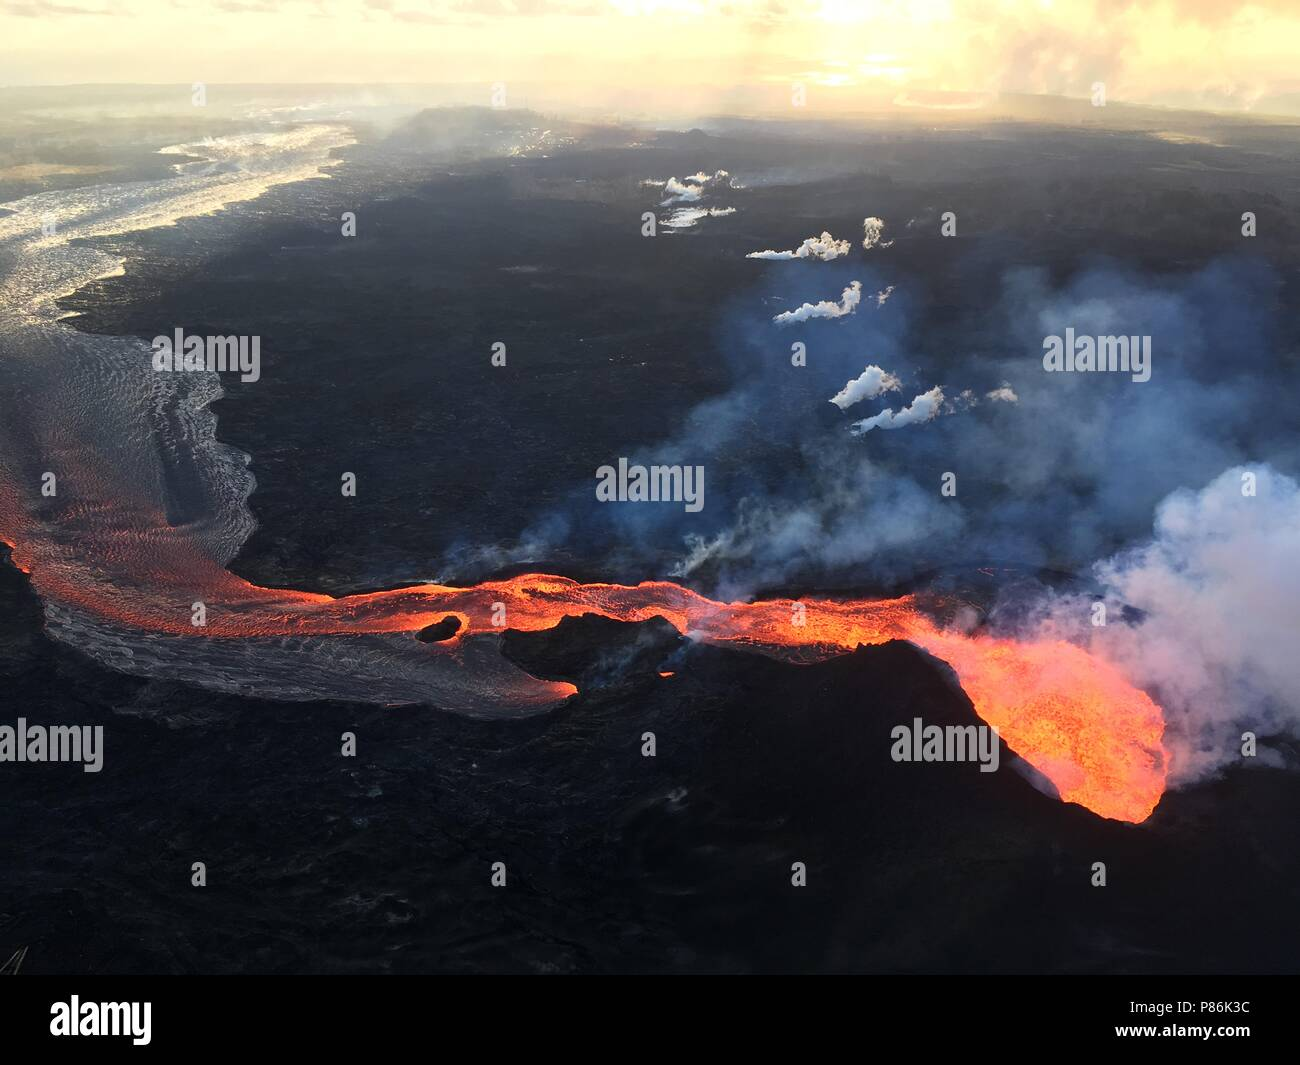 Hawaii. 9th July 2018. Lava flows toward the ocean from the Kilauea volcano July 9, 2018 in Hawaii. The recent eruption continues destroying homes, forcing evacuations and spewing lava and poison gas on the Big Island of Hawaii. Credit: Planetpix/Alamy Live News Stock Photo